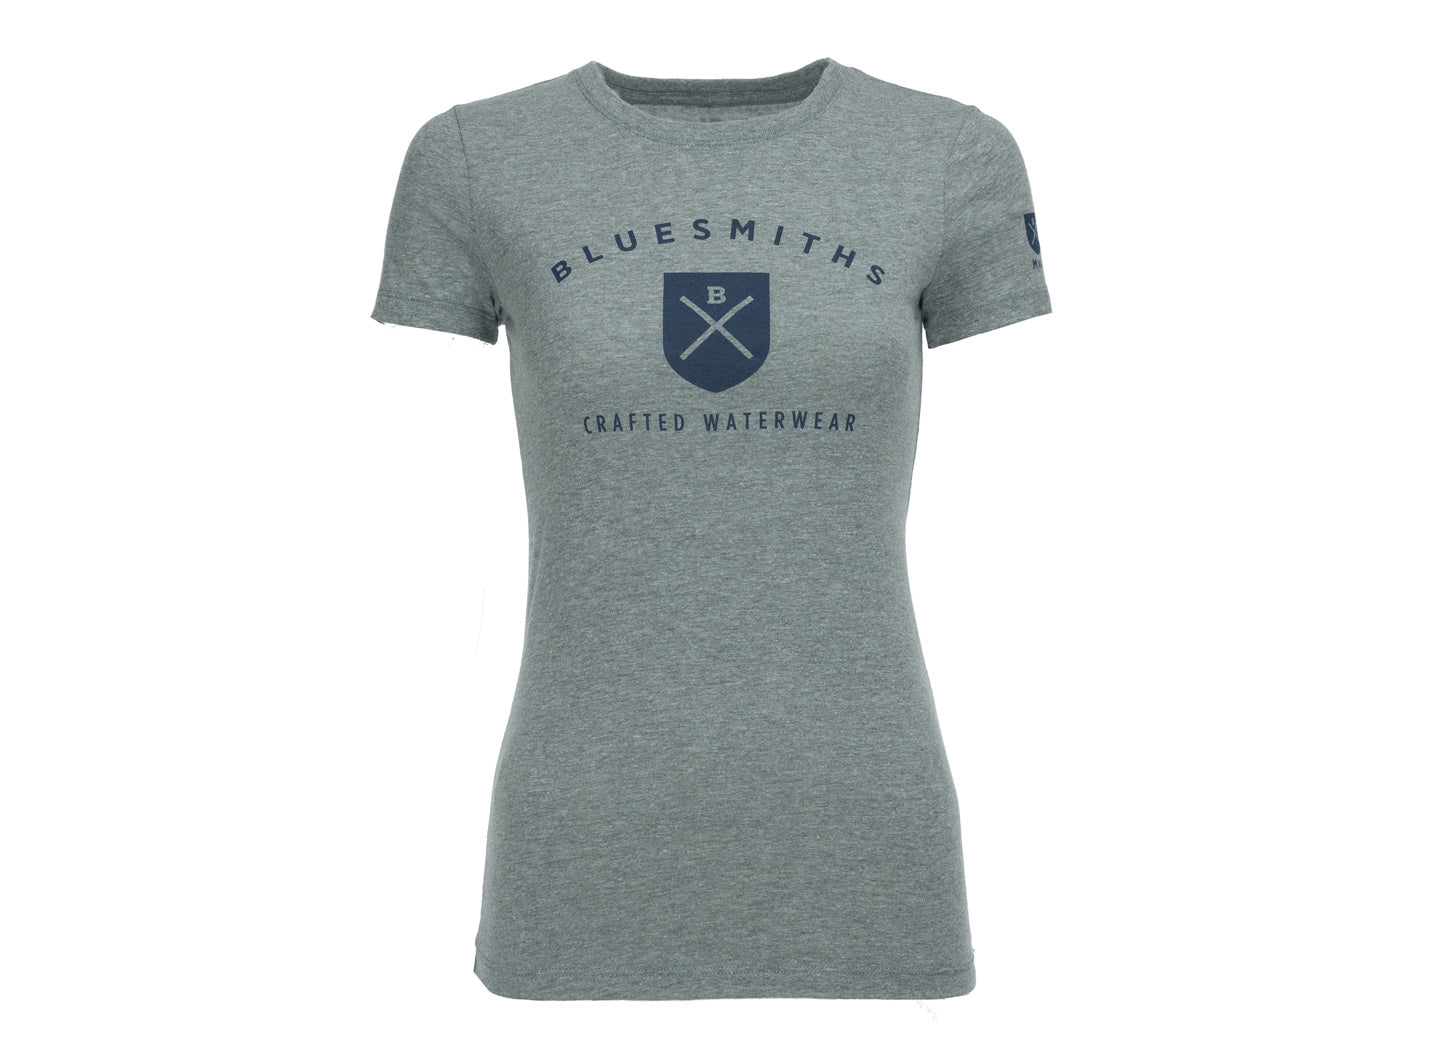 Bluesmiths Crafted Waterwear Logo Tee Shirt for Women - Heather Grey